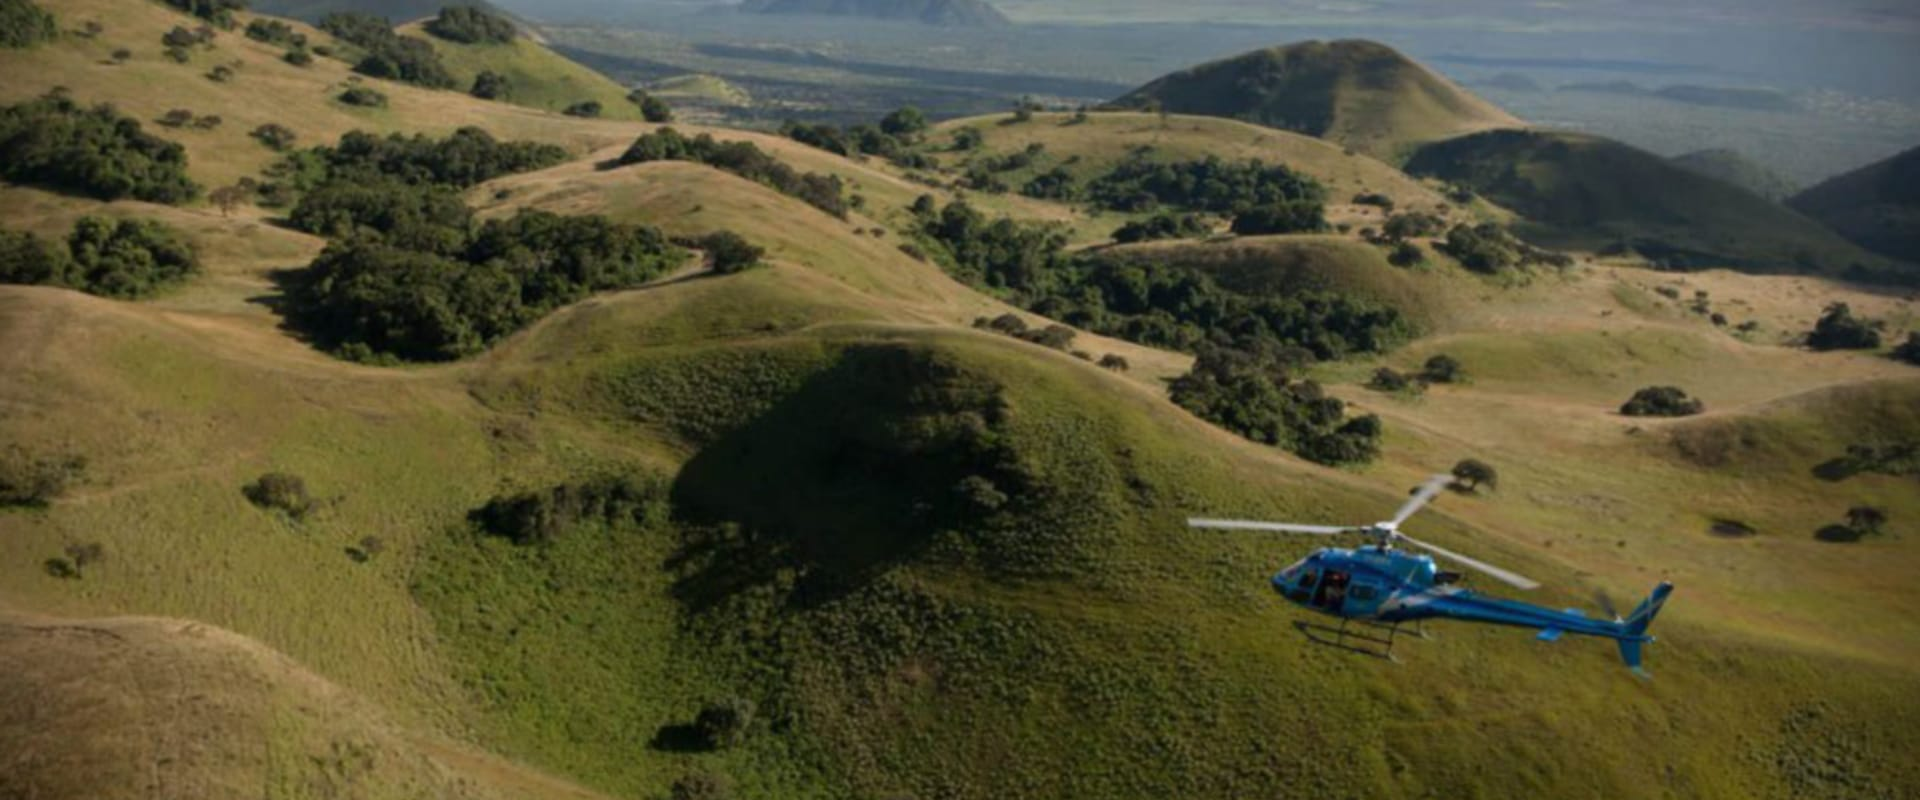 Take a helicopter tour to Mount Kenya